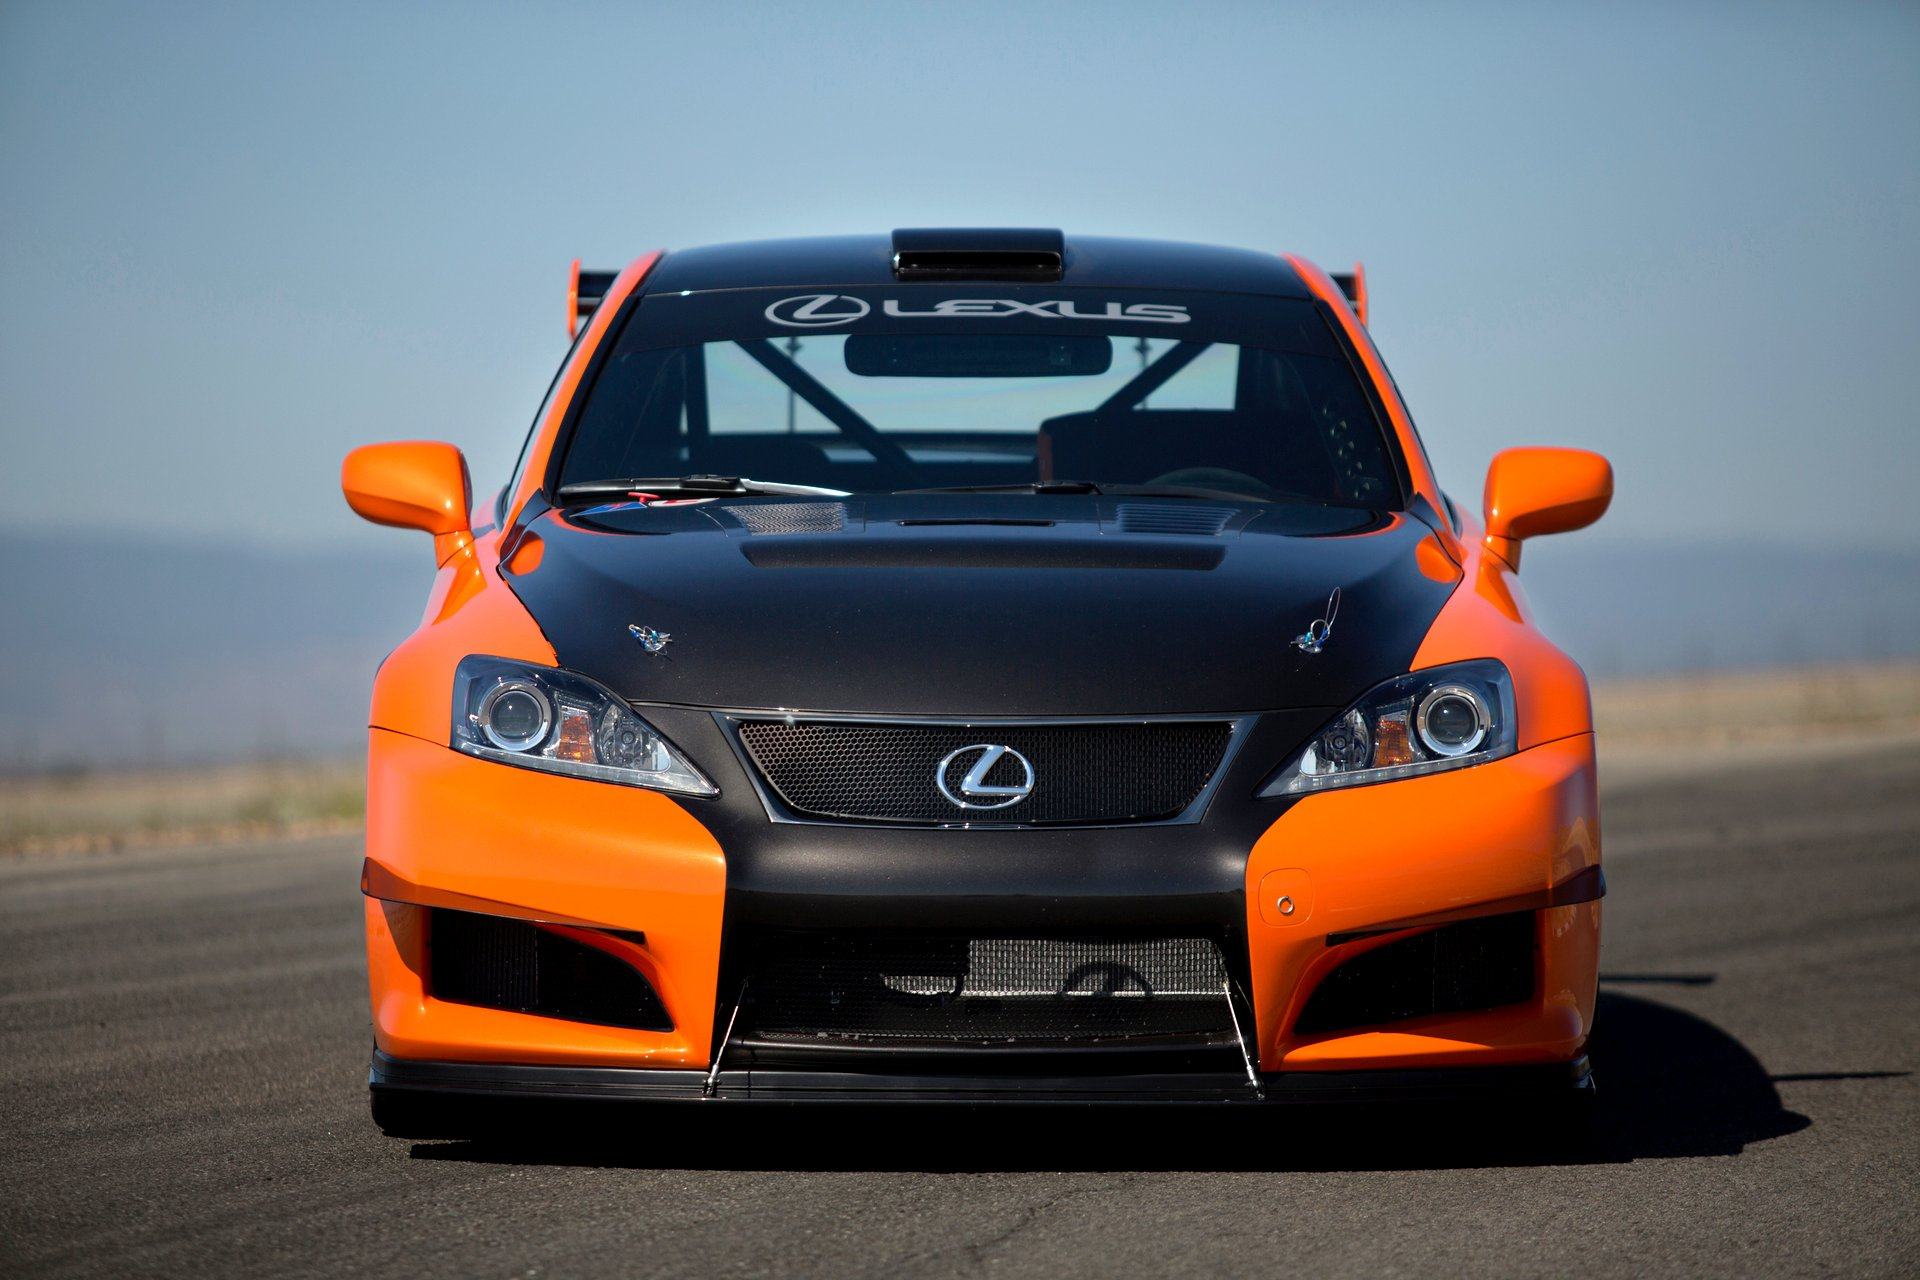 Cheap Sports Cars for Sale Near Me Fresh Caring for Sports Cars